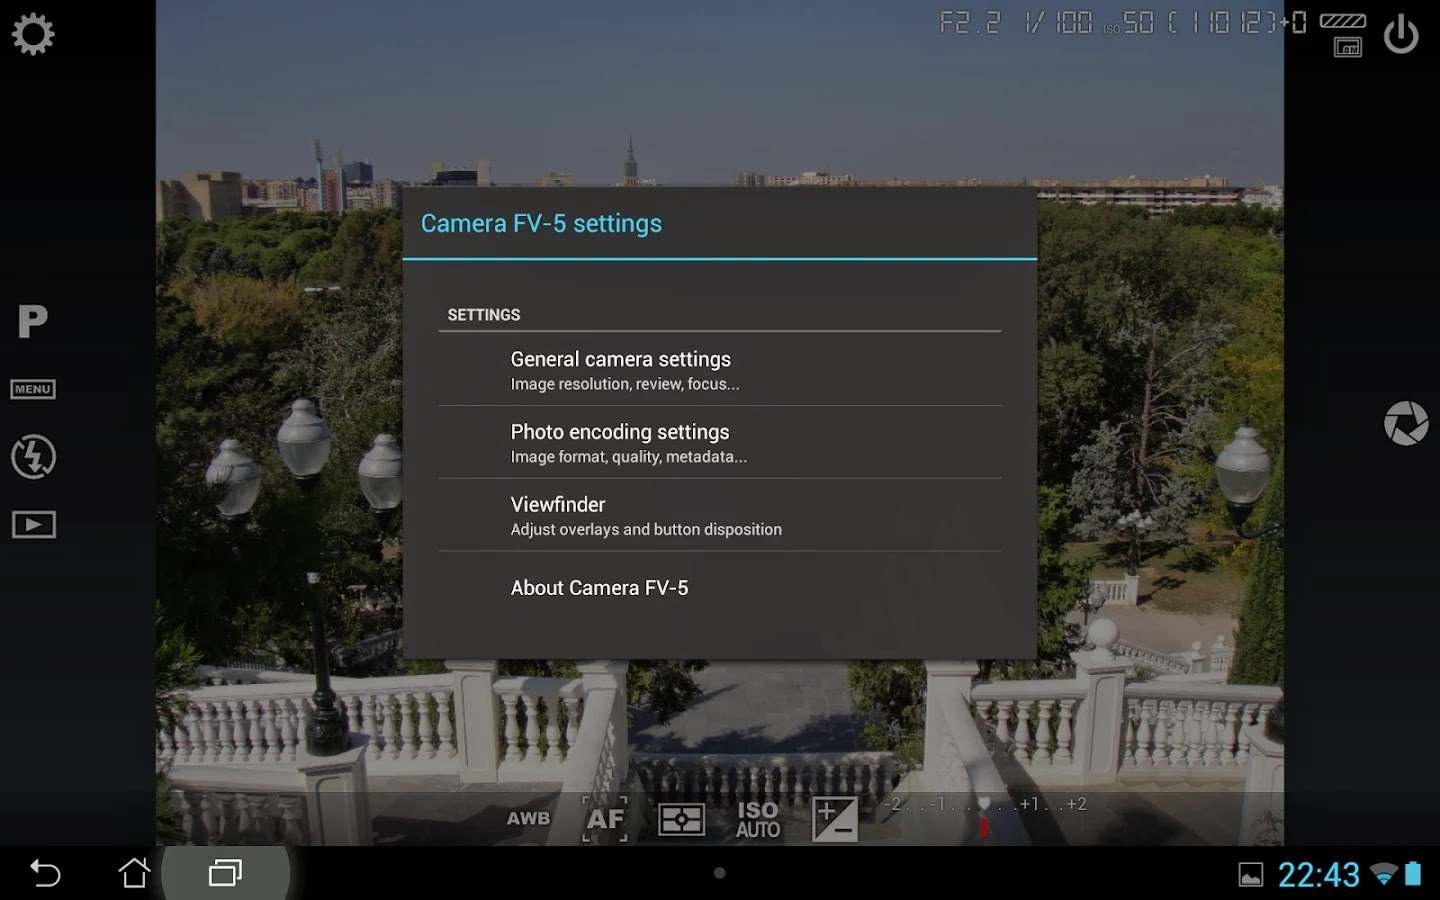 Download APLIKASI CAMERA FV-5 LITE for Android via Google Play Store